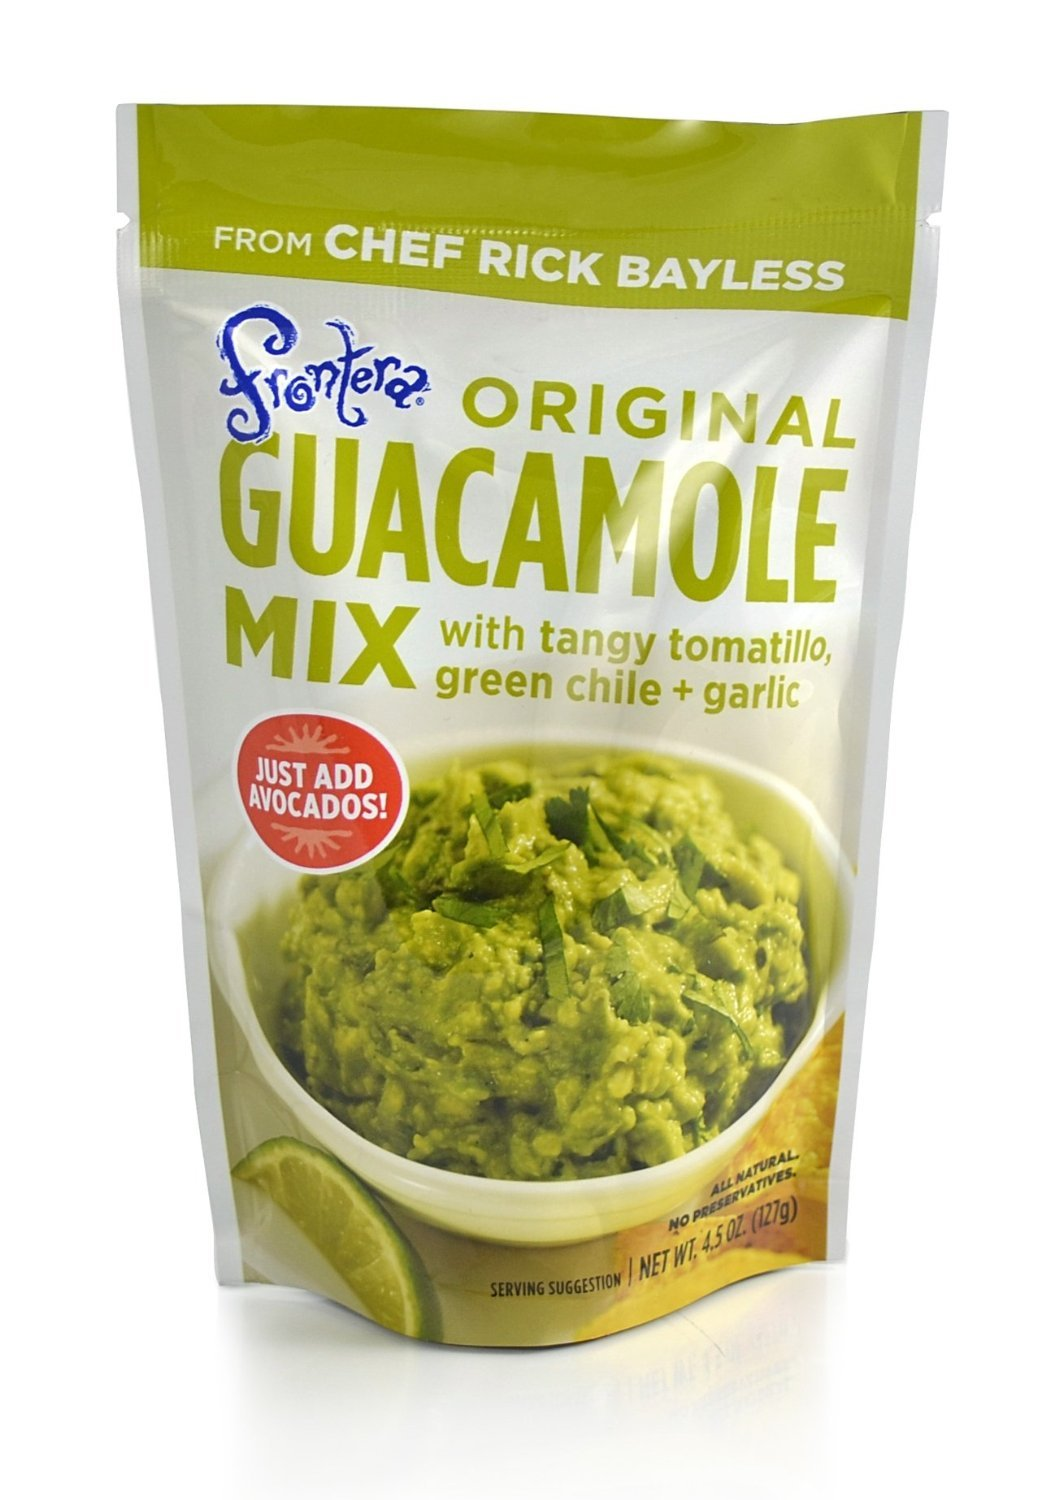 Frontera Foods Guacamole Mix, 4.5 oz by Frontera Foods (Image #1)